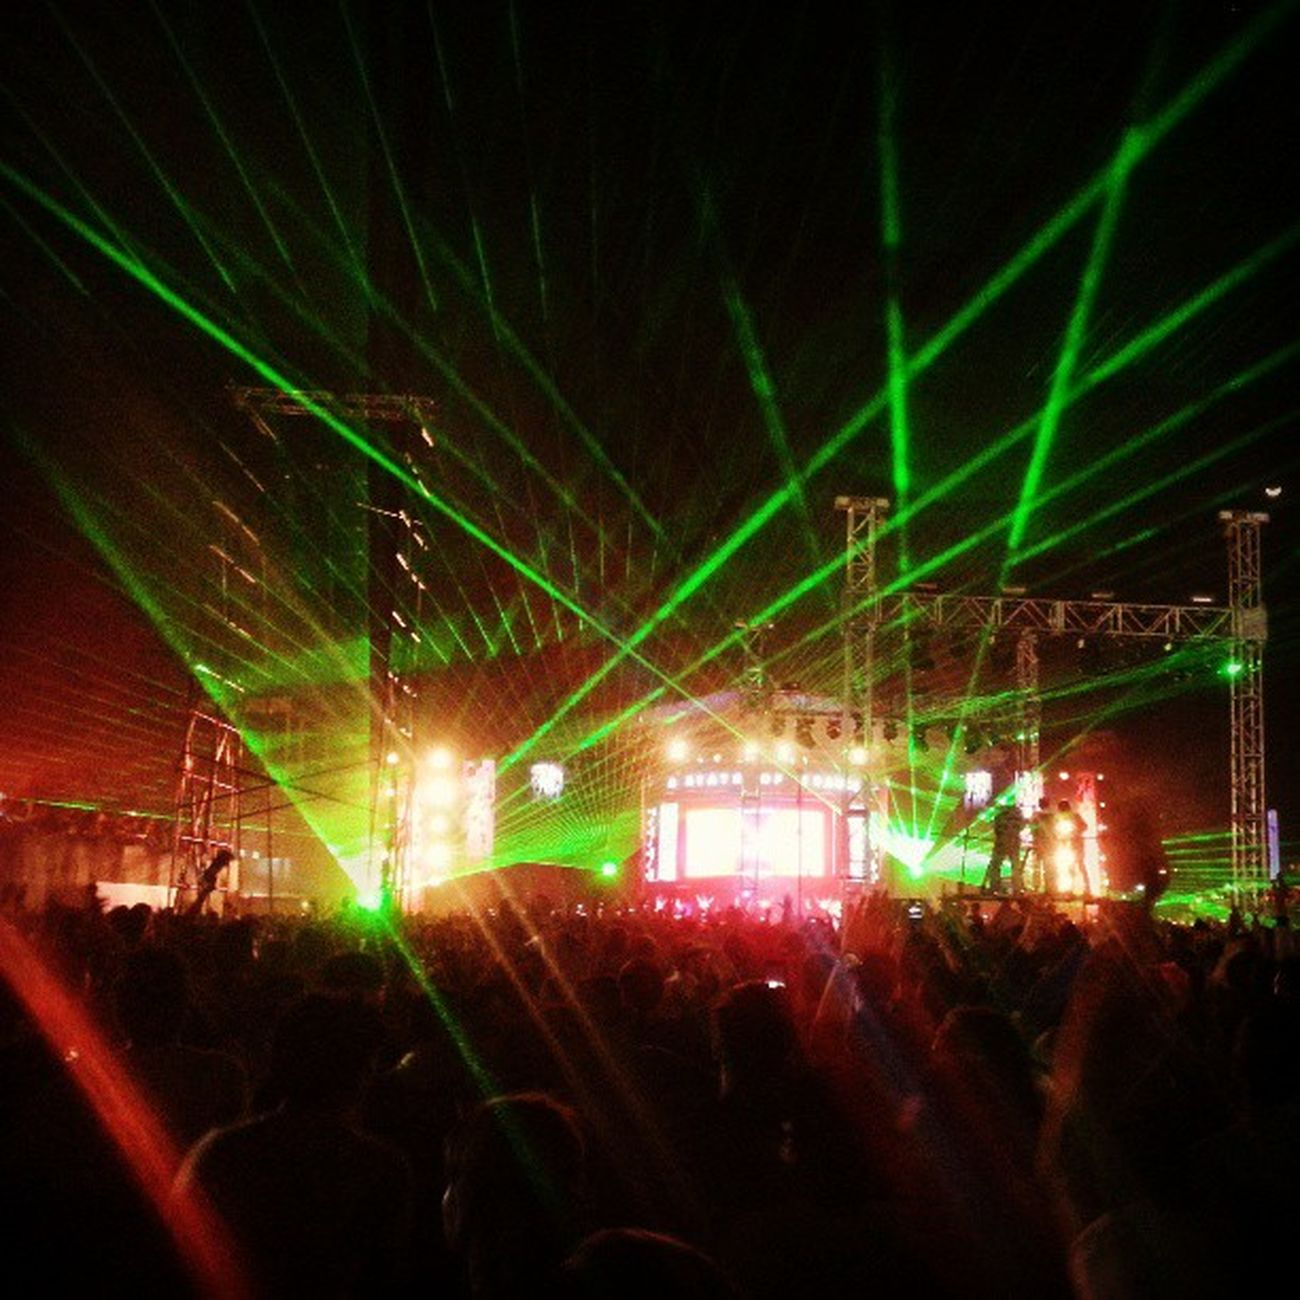 One final pic of the stage at Asot600mum . Thanks submerge and all others who put together the event. Hope to attend more events like these Asot600 Mumbai Edm trance concert